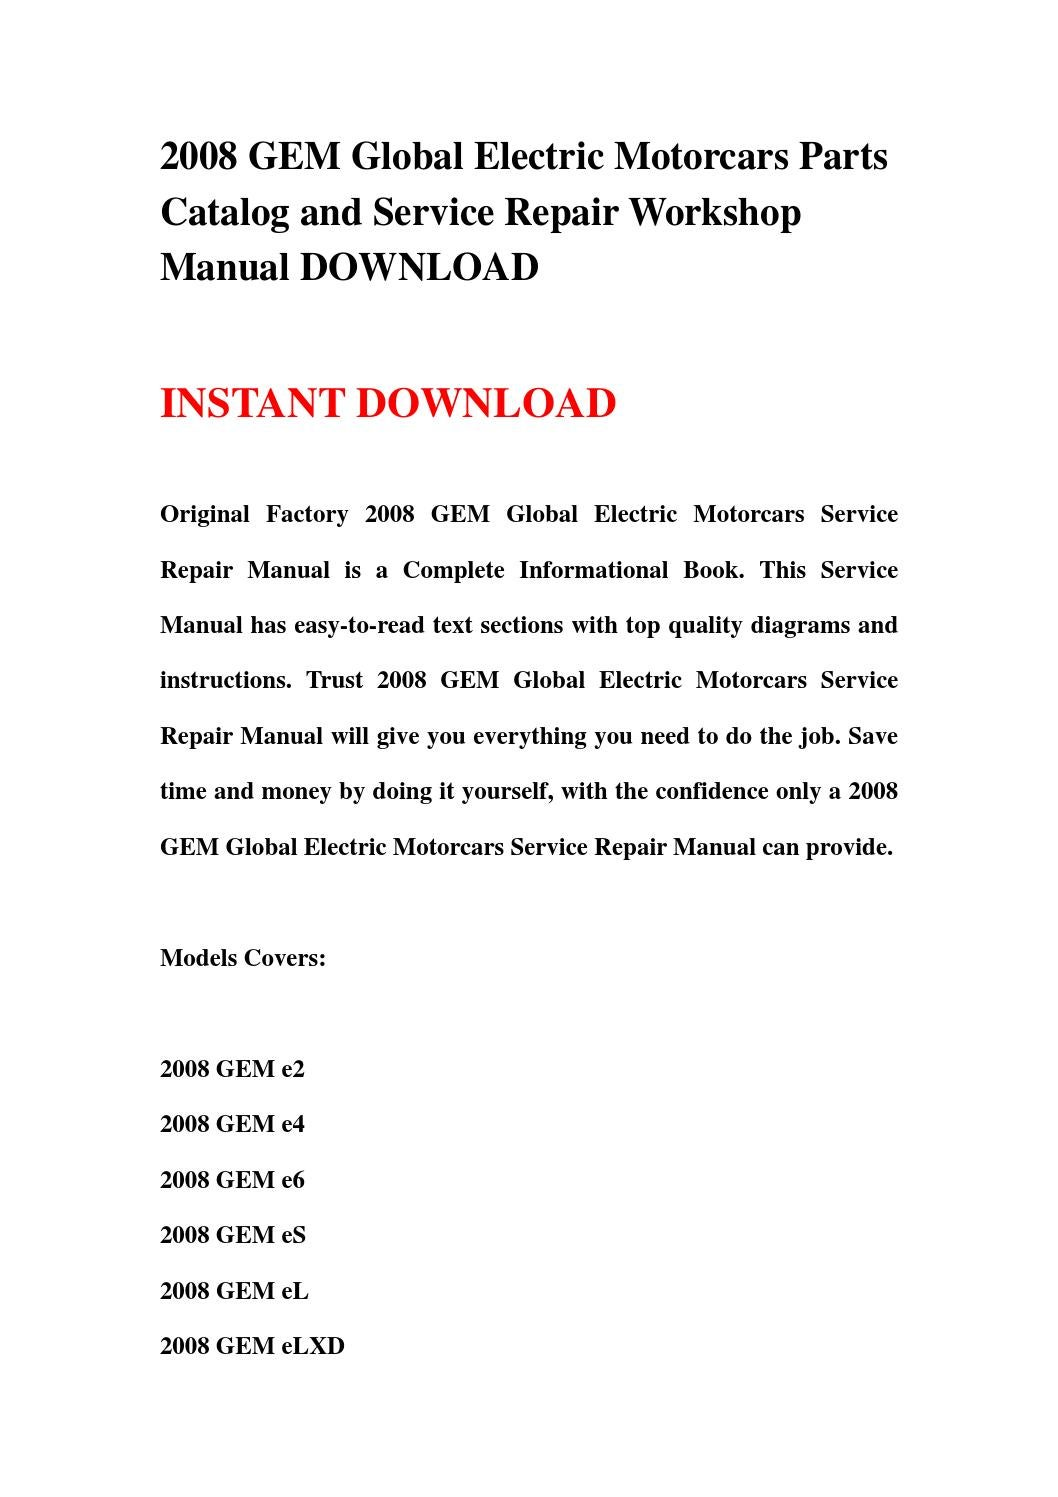 Gem E2 Wiring Diagram For 2008 Library Car Schematic Global Electric Motorcars Parts Catalog And Service Repair Workshop Manual Download By Jhhsenfnn